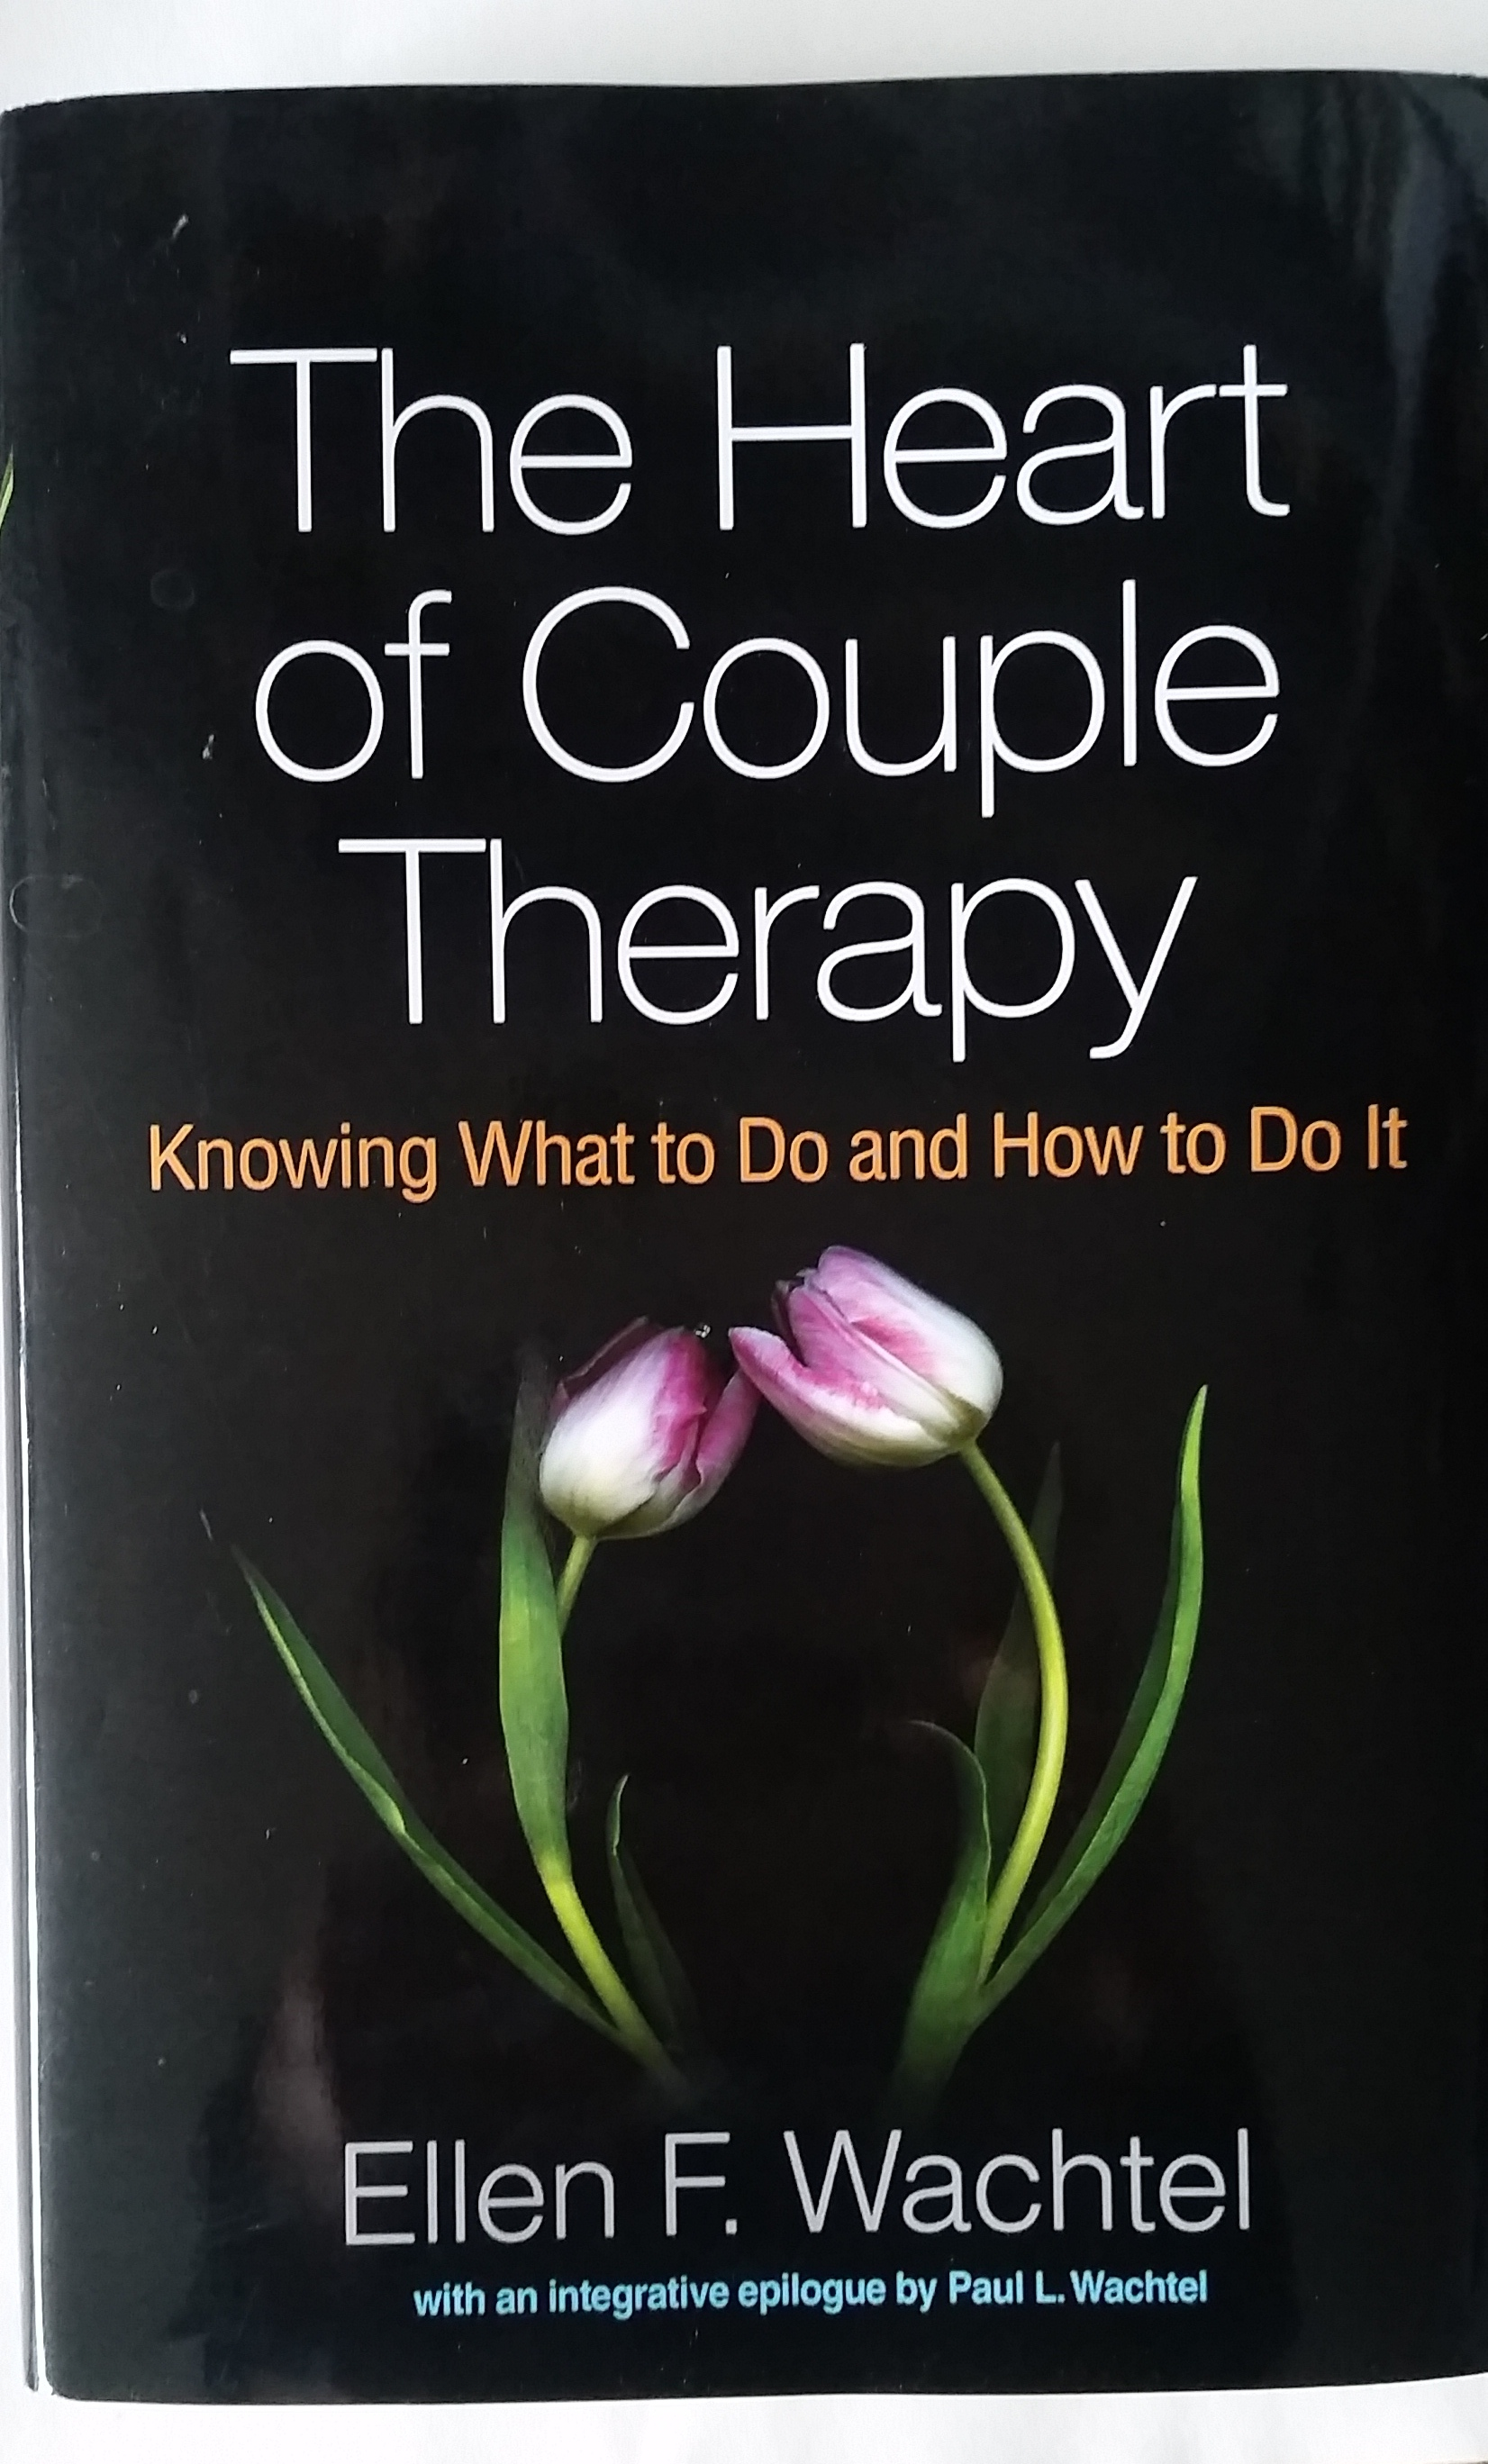 Couples therapy 15 essentials that the best therapists do couples therapy 15 essentials that the best therapists do psychology today solutioingenieria Choice Image